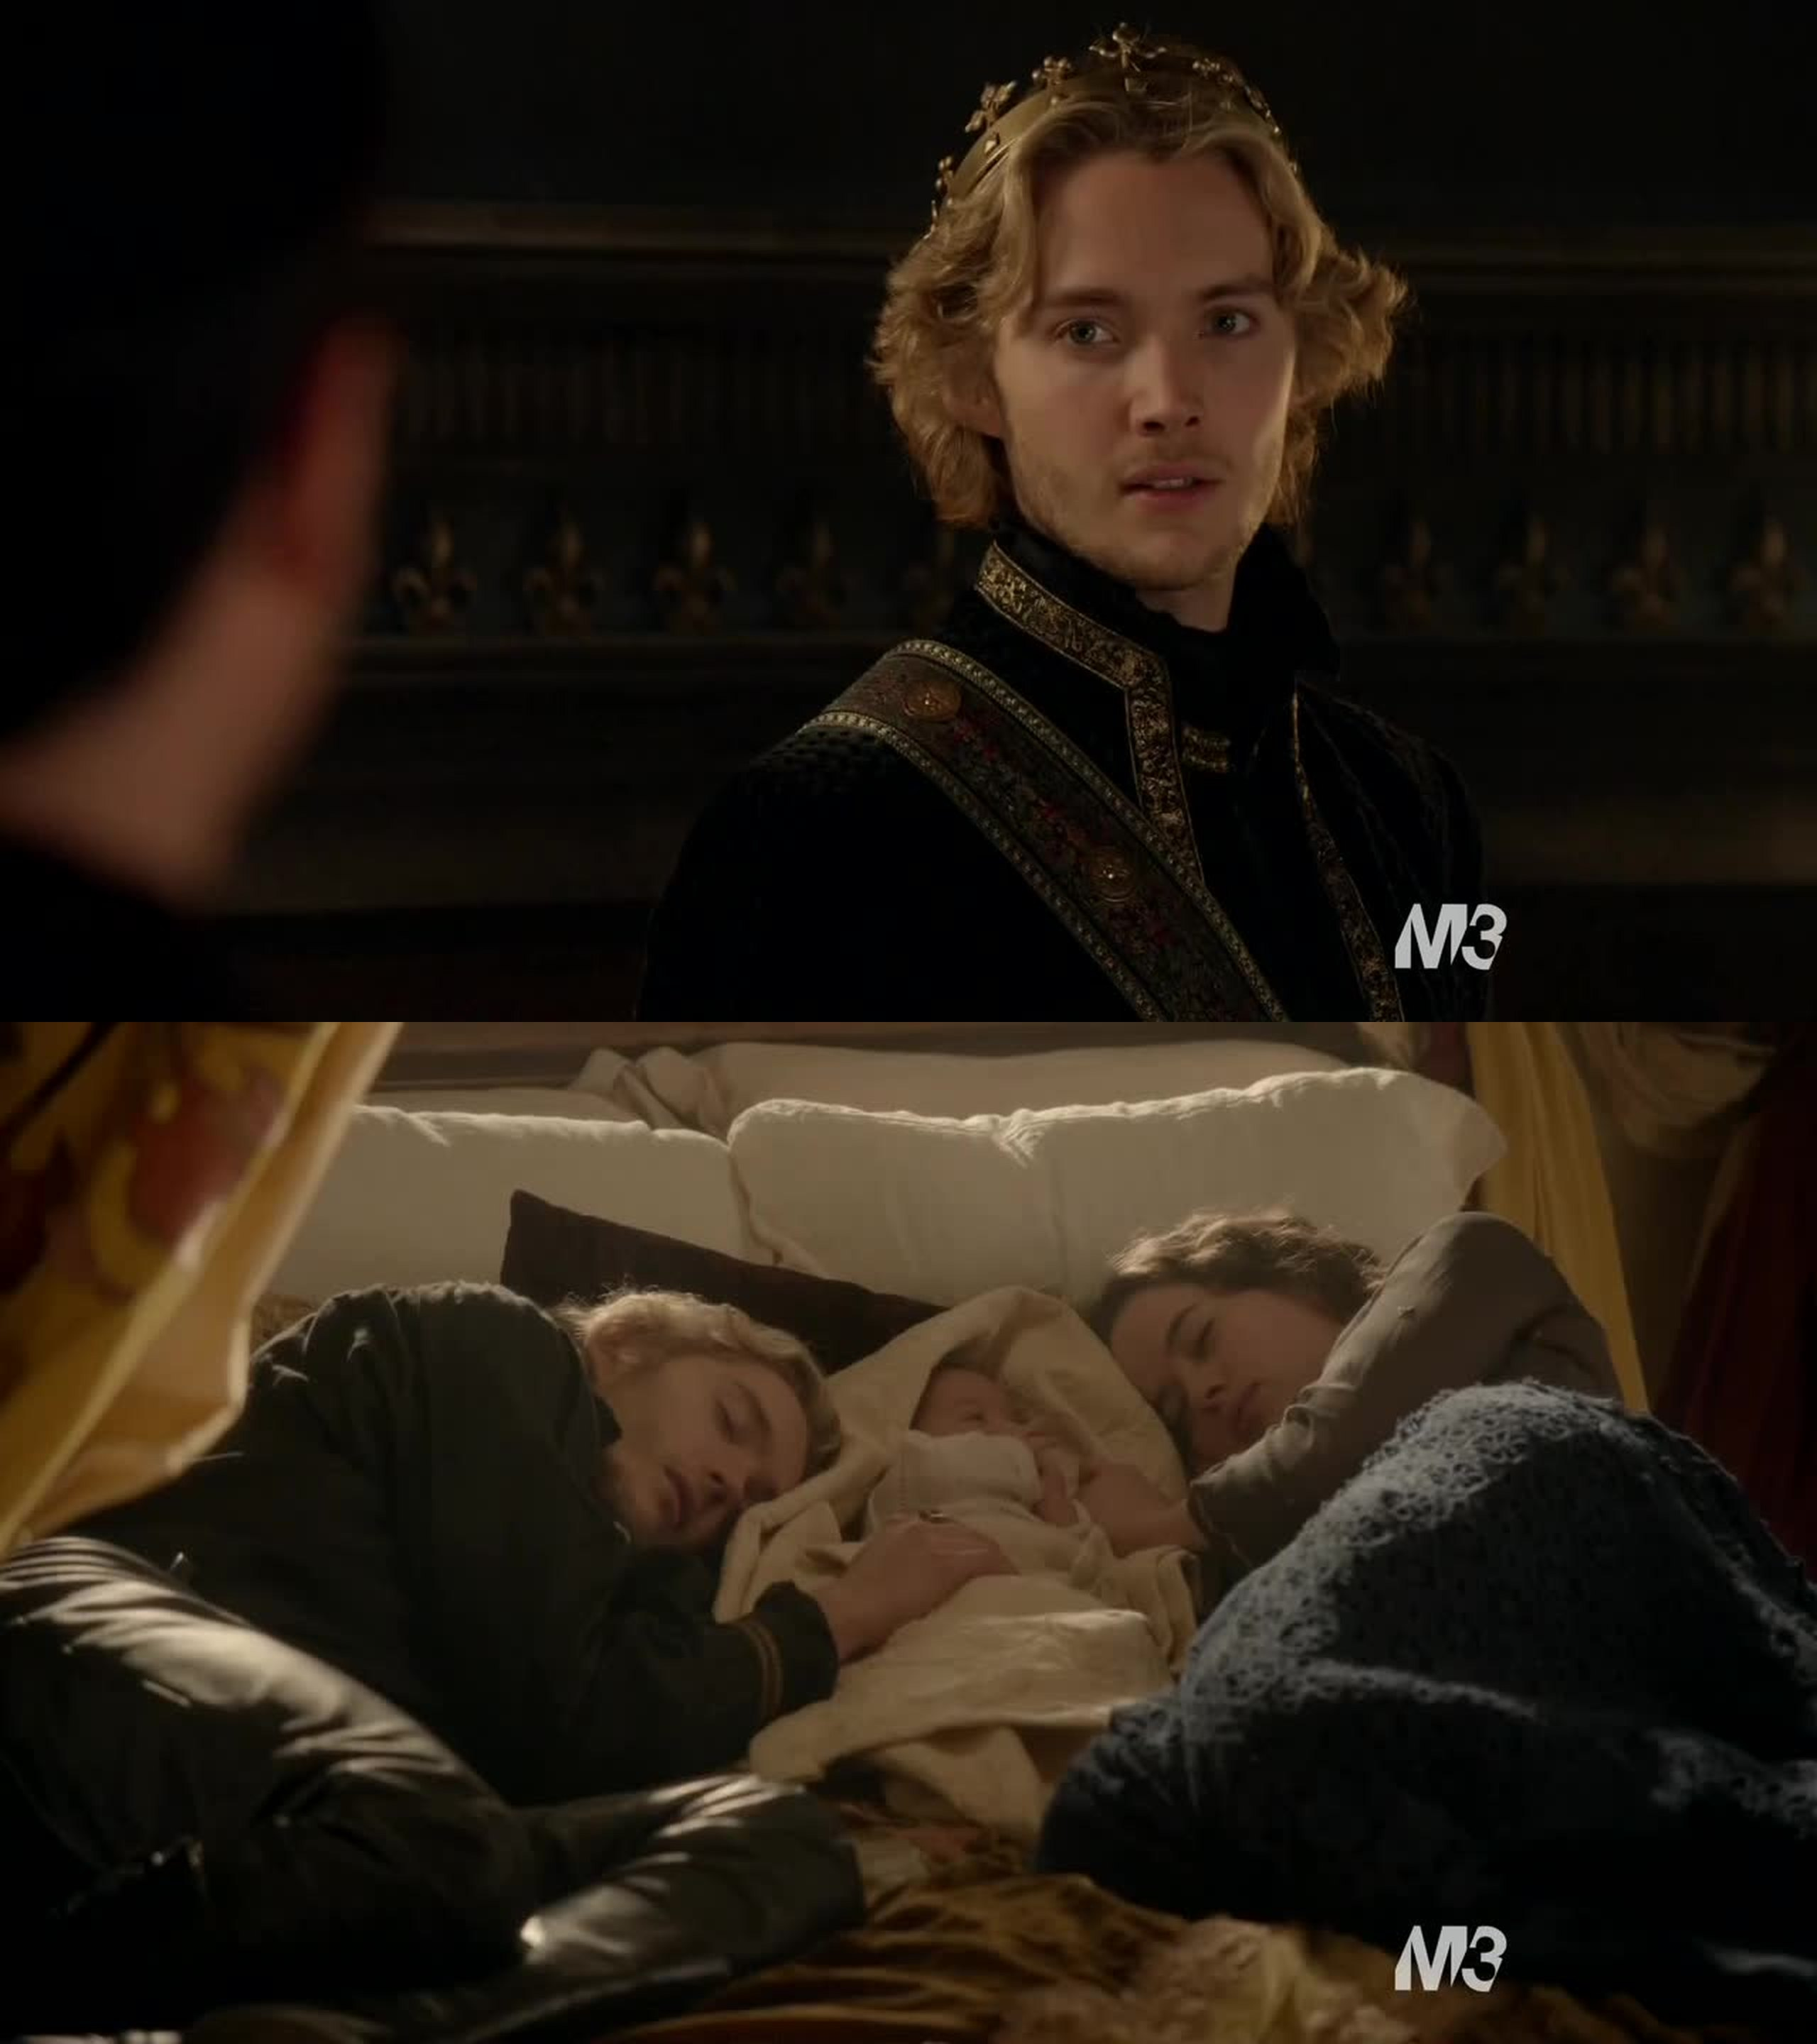 Francis is back at his best ! And don't say that his ruining everything with this last scene, that's not true, his just sleeping with his son, he's not romantically involved with Lola, he's not doing anything wrong (they don't even touch each other). I can understand that she's upset to see this, but I also think that Frary is bigger & stronger than this :)